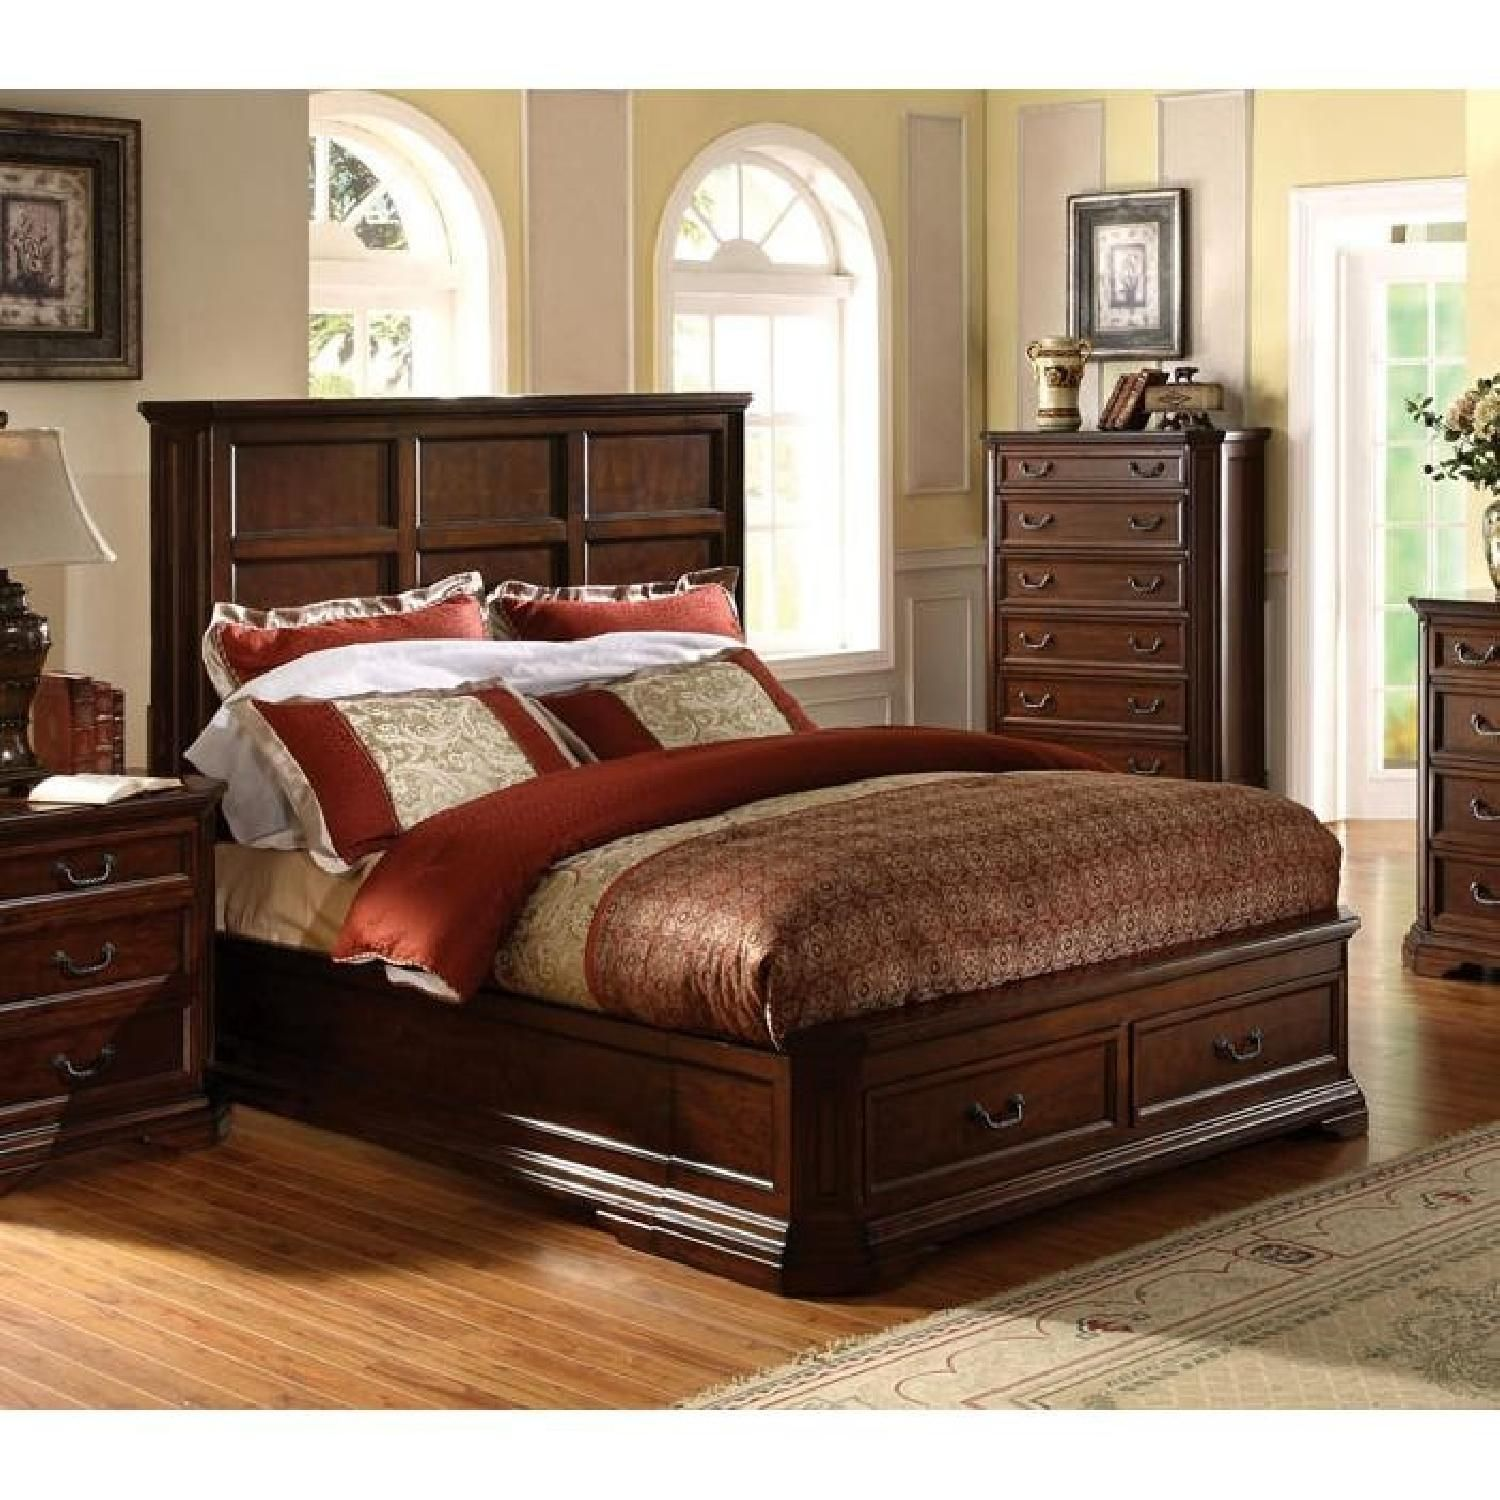 Used Furniture Of America California King For Sale In Nyc Lexington Furniture Bedroom Furniture King Size Bedroom Sets